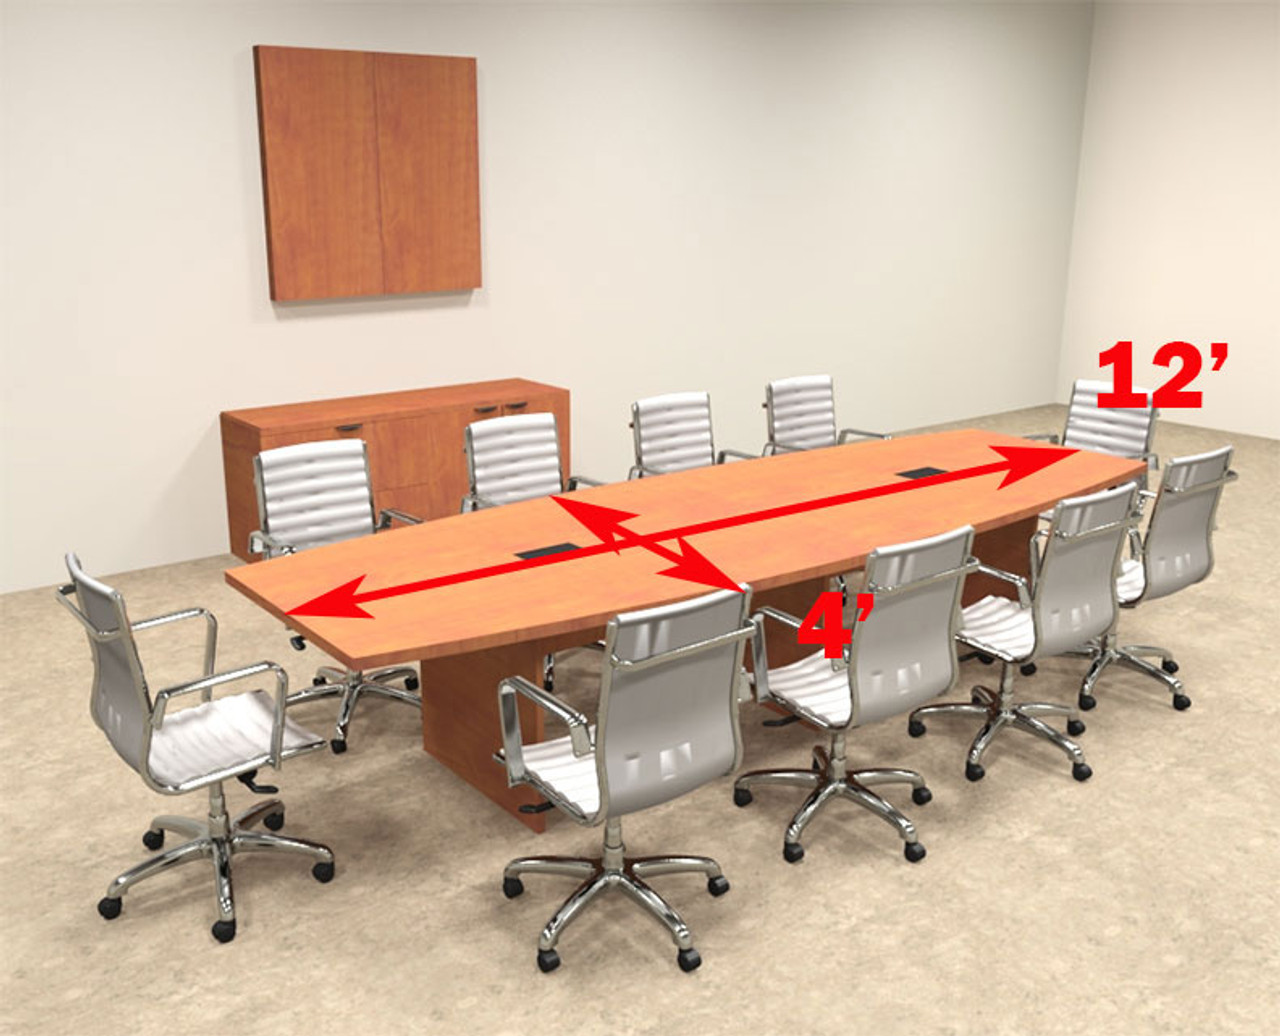 Modern Boat Shapedd 12' Feet Conference Table, #OF-CON-C64